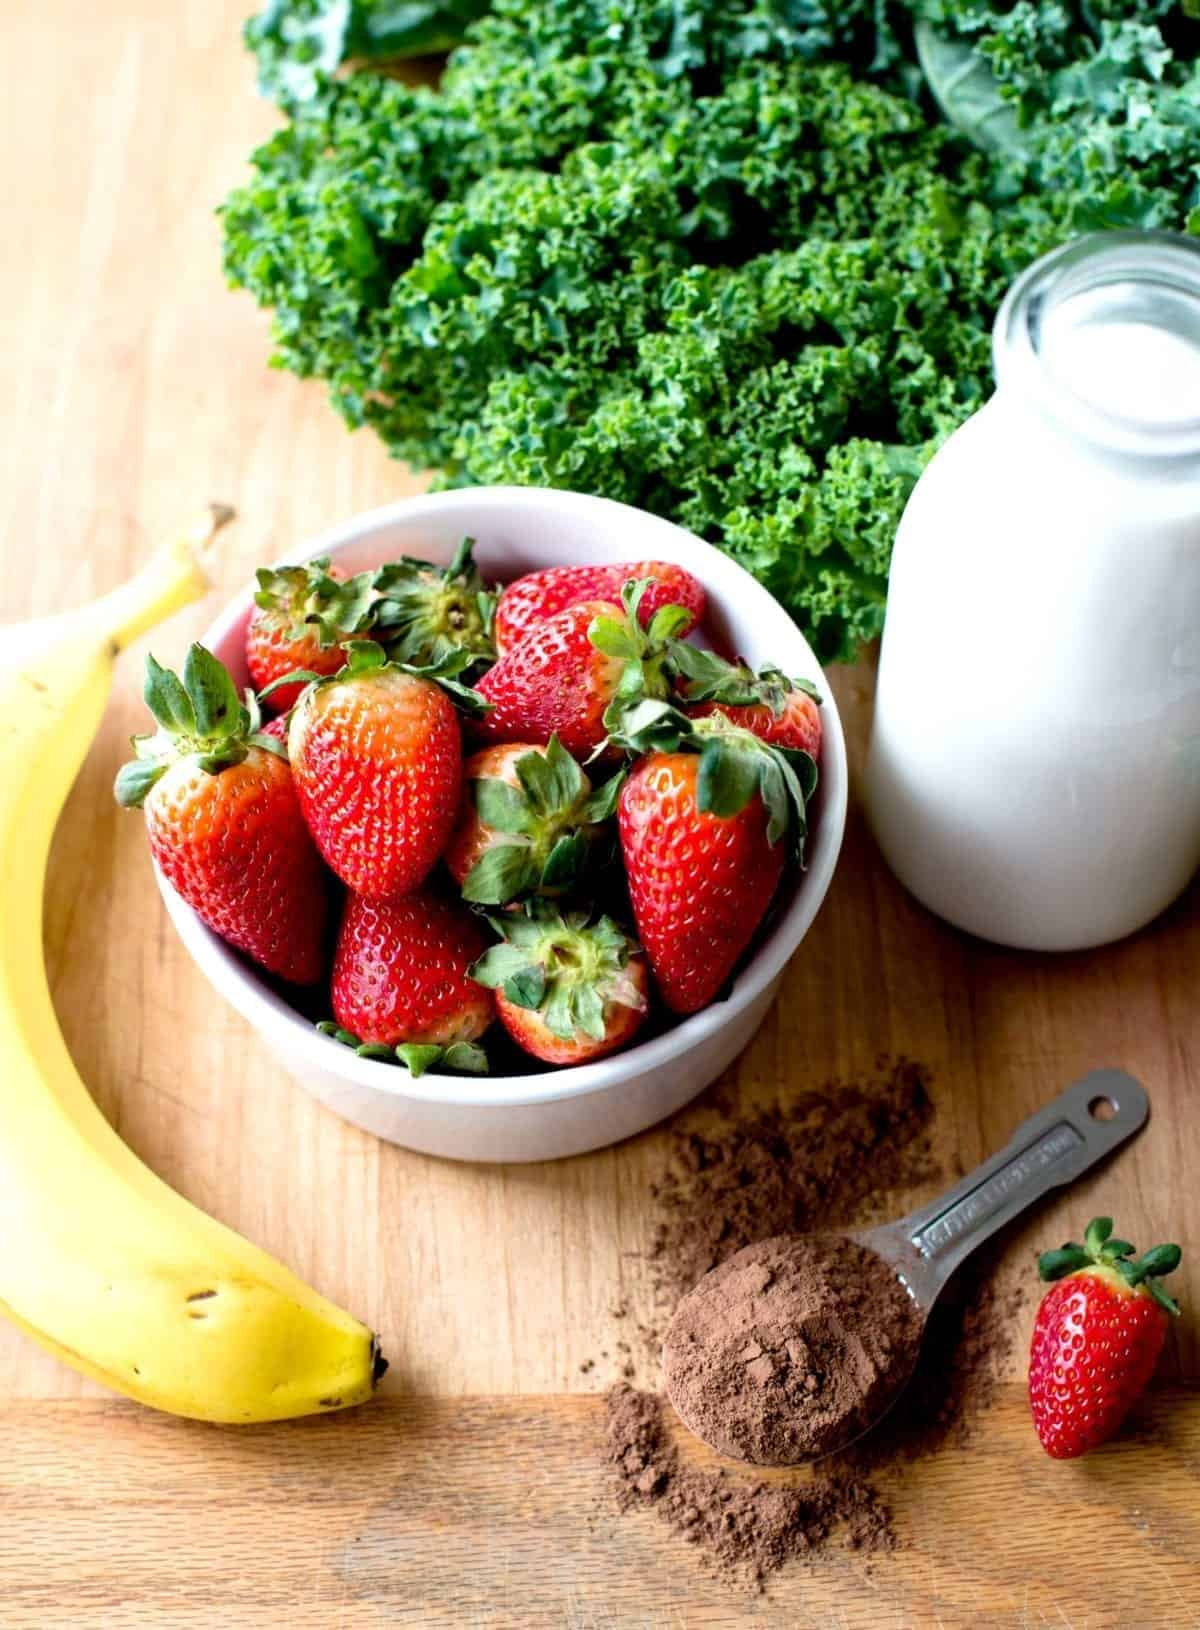 Strawberries, banana, milk, kale and cacao powder for smoothie